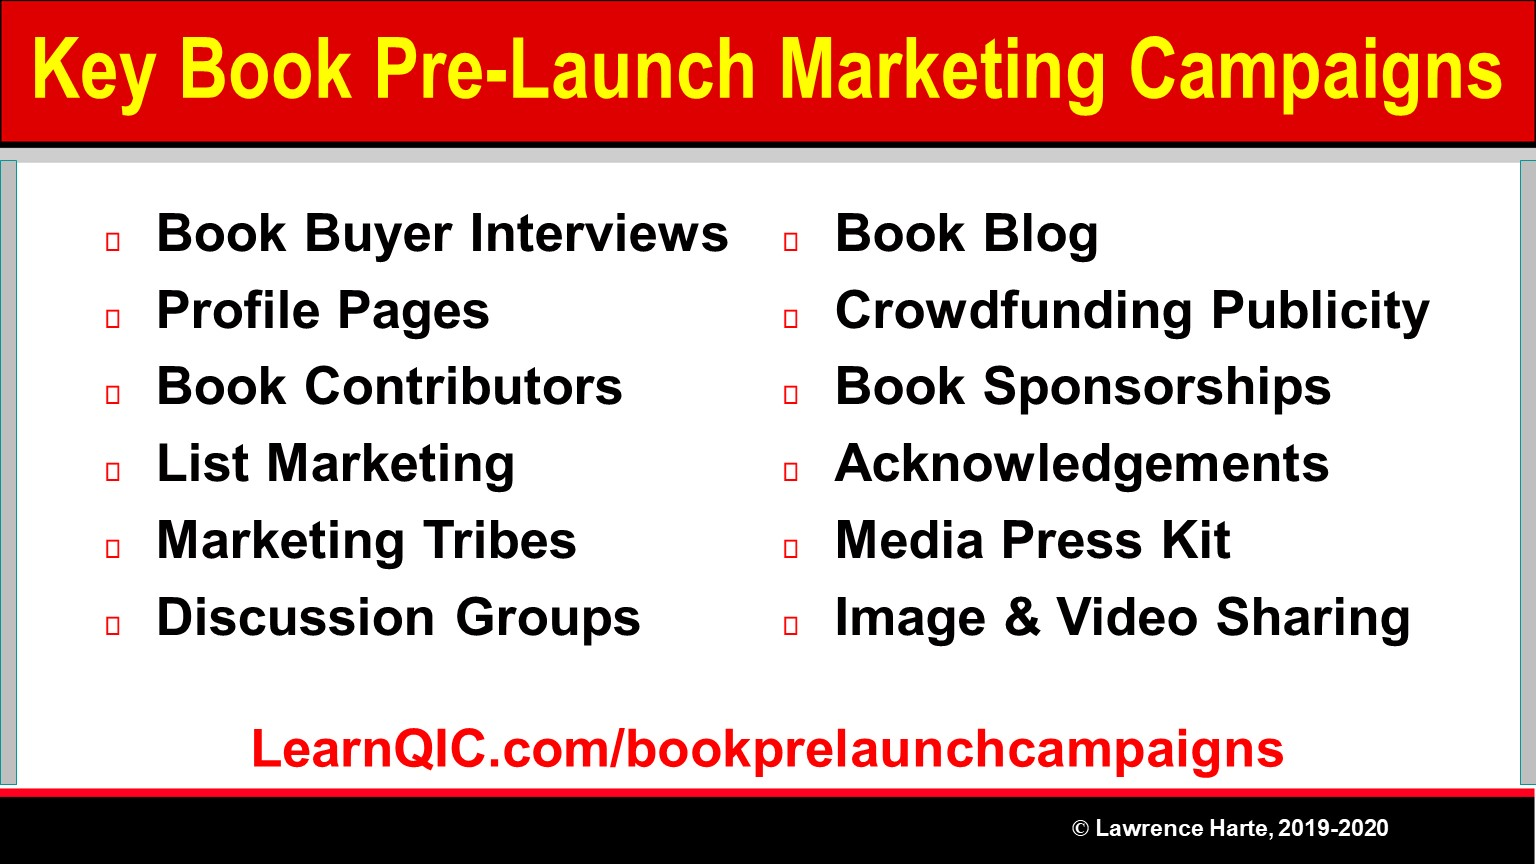 Key Book Pre-Launch Marketing Campaigns